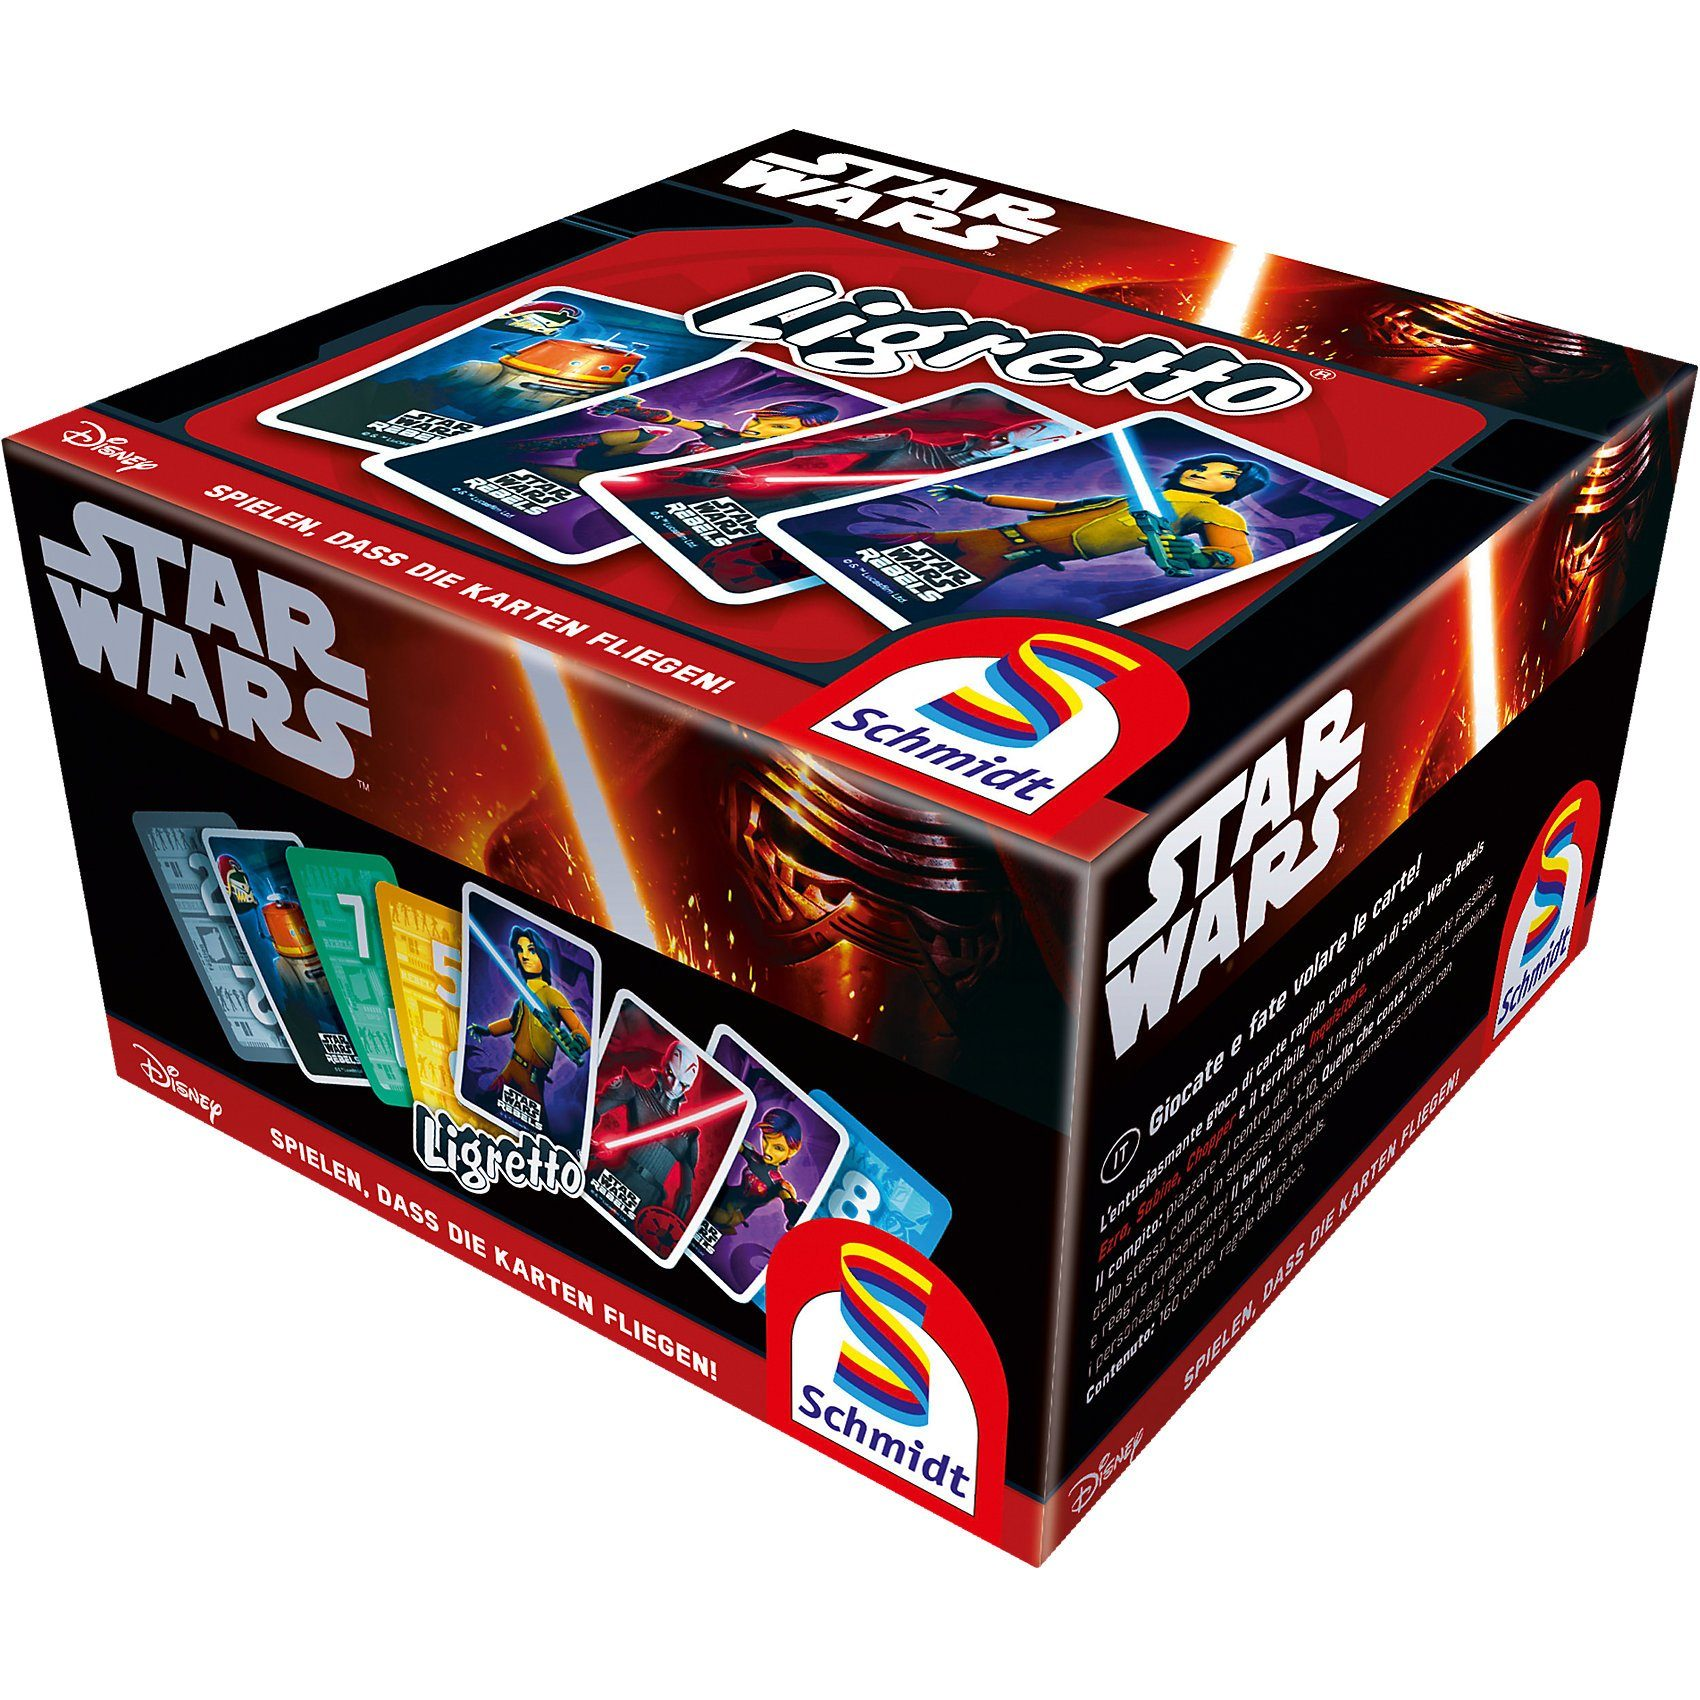 Schmidt Spiele Star Wars Rebels, Ligretto®